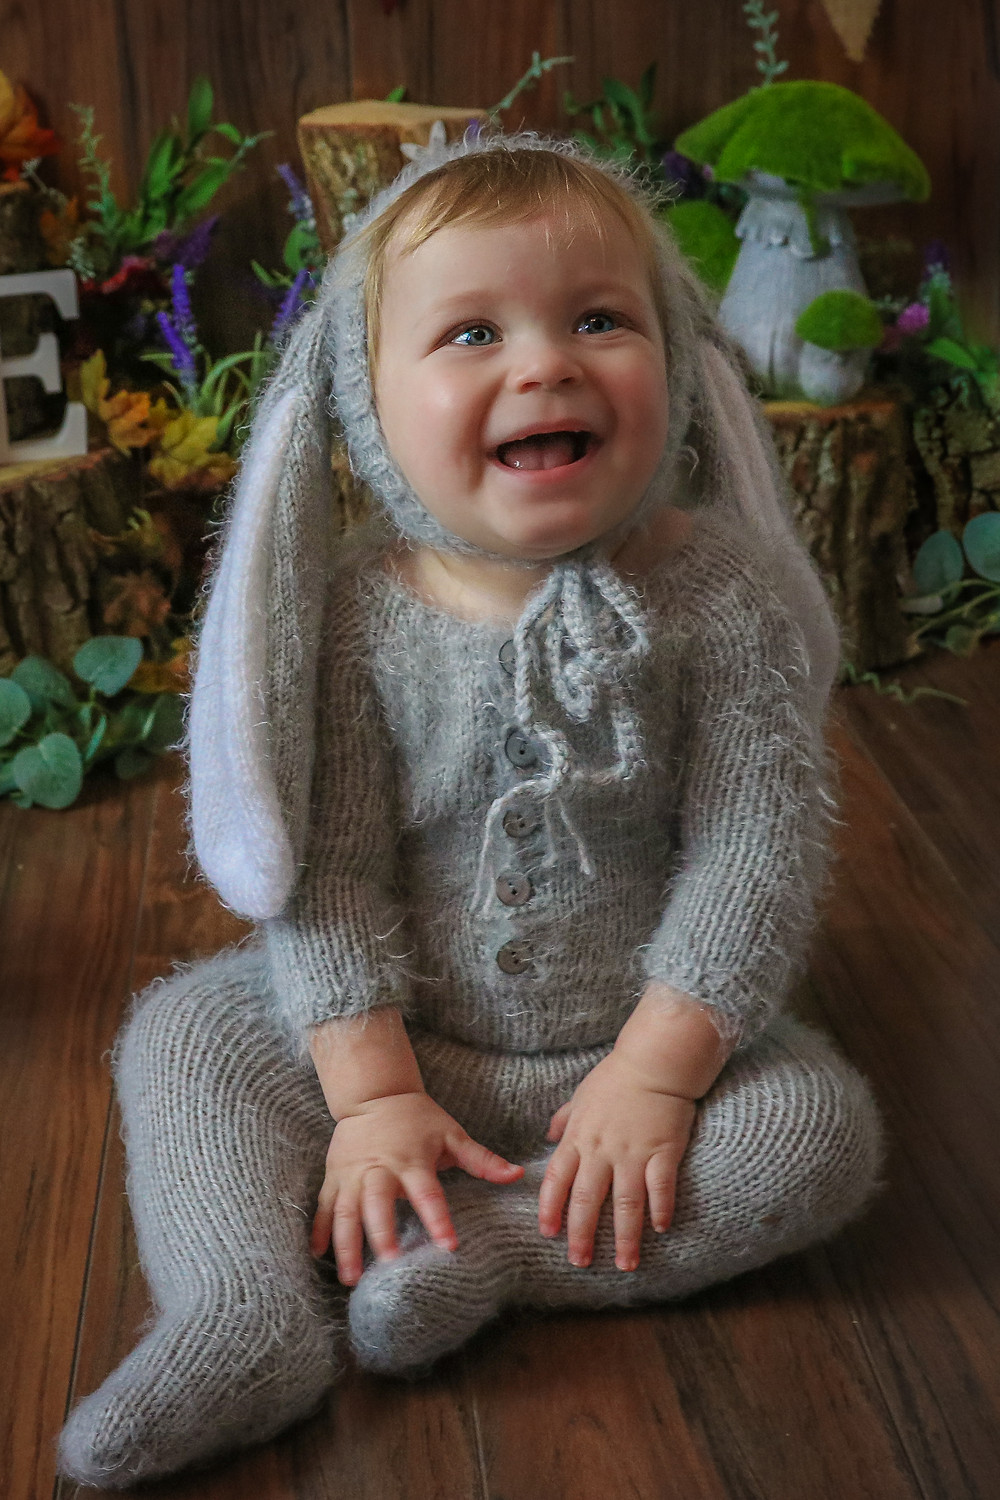 little boy wearing bunny outfit smiling